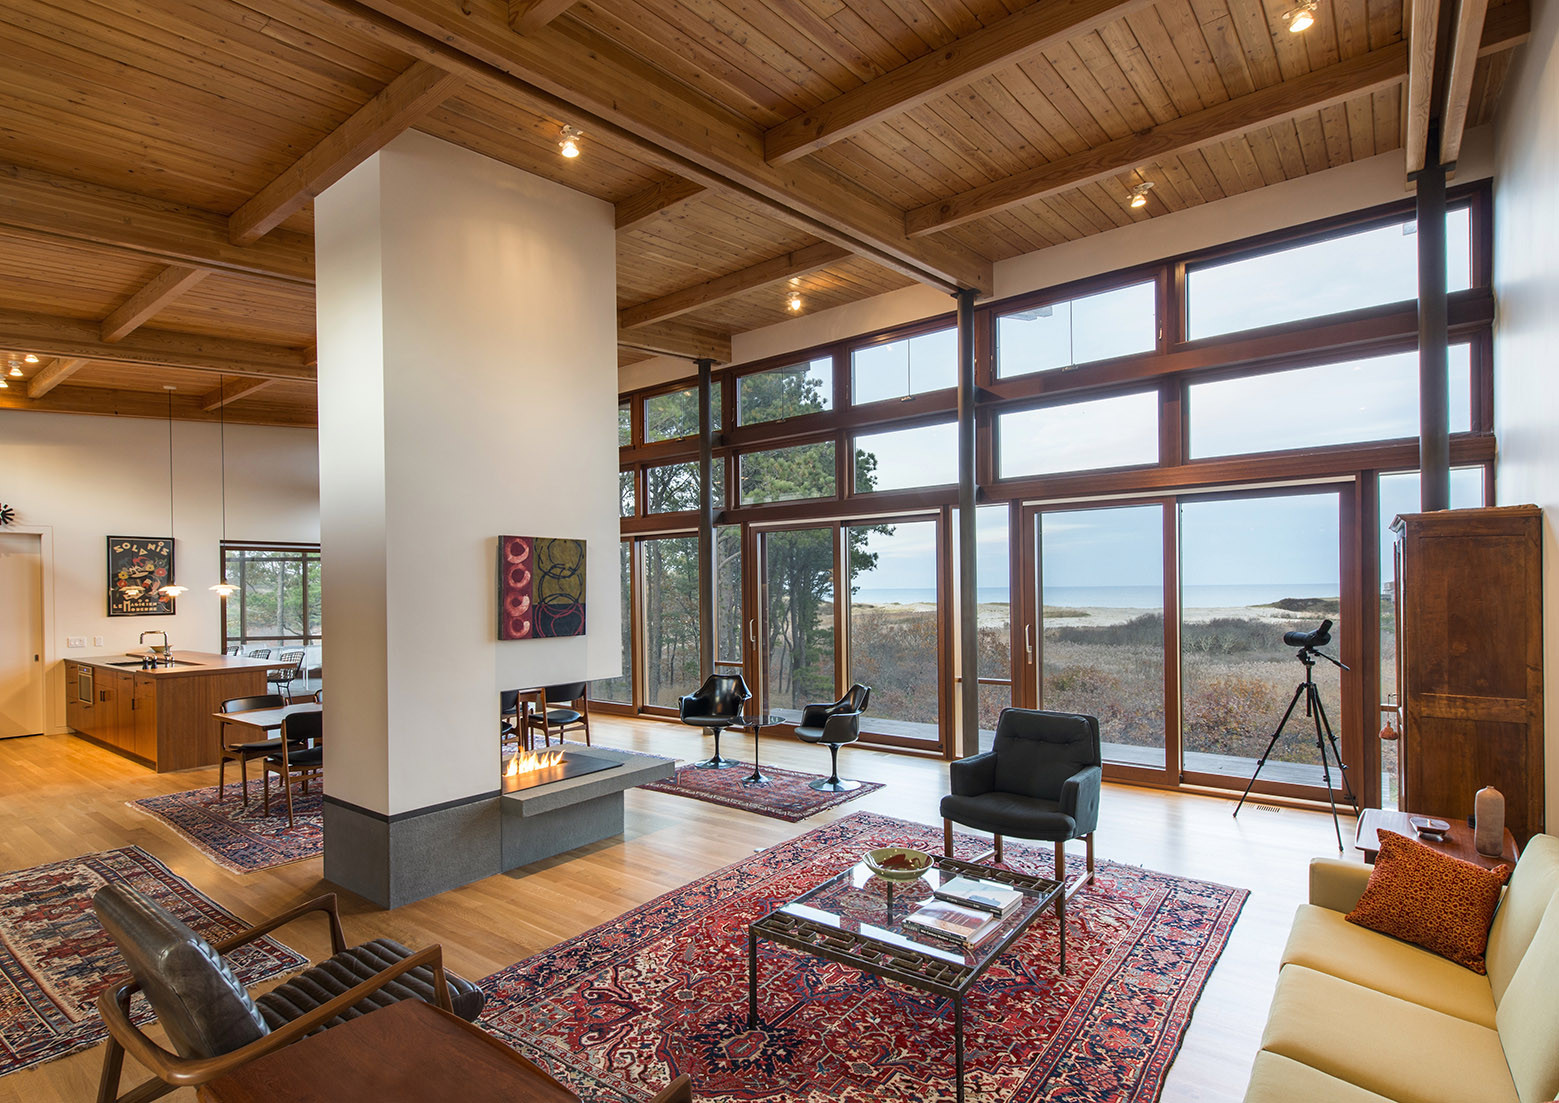 Long dune residence hammer architects archdaily for Mid century modern design principles